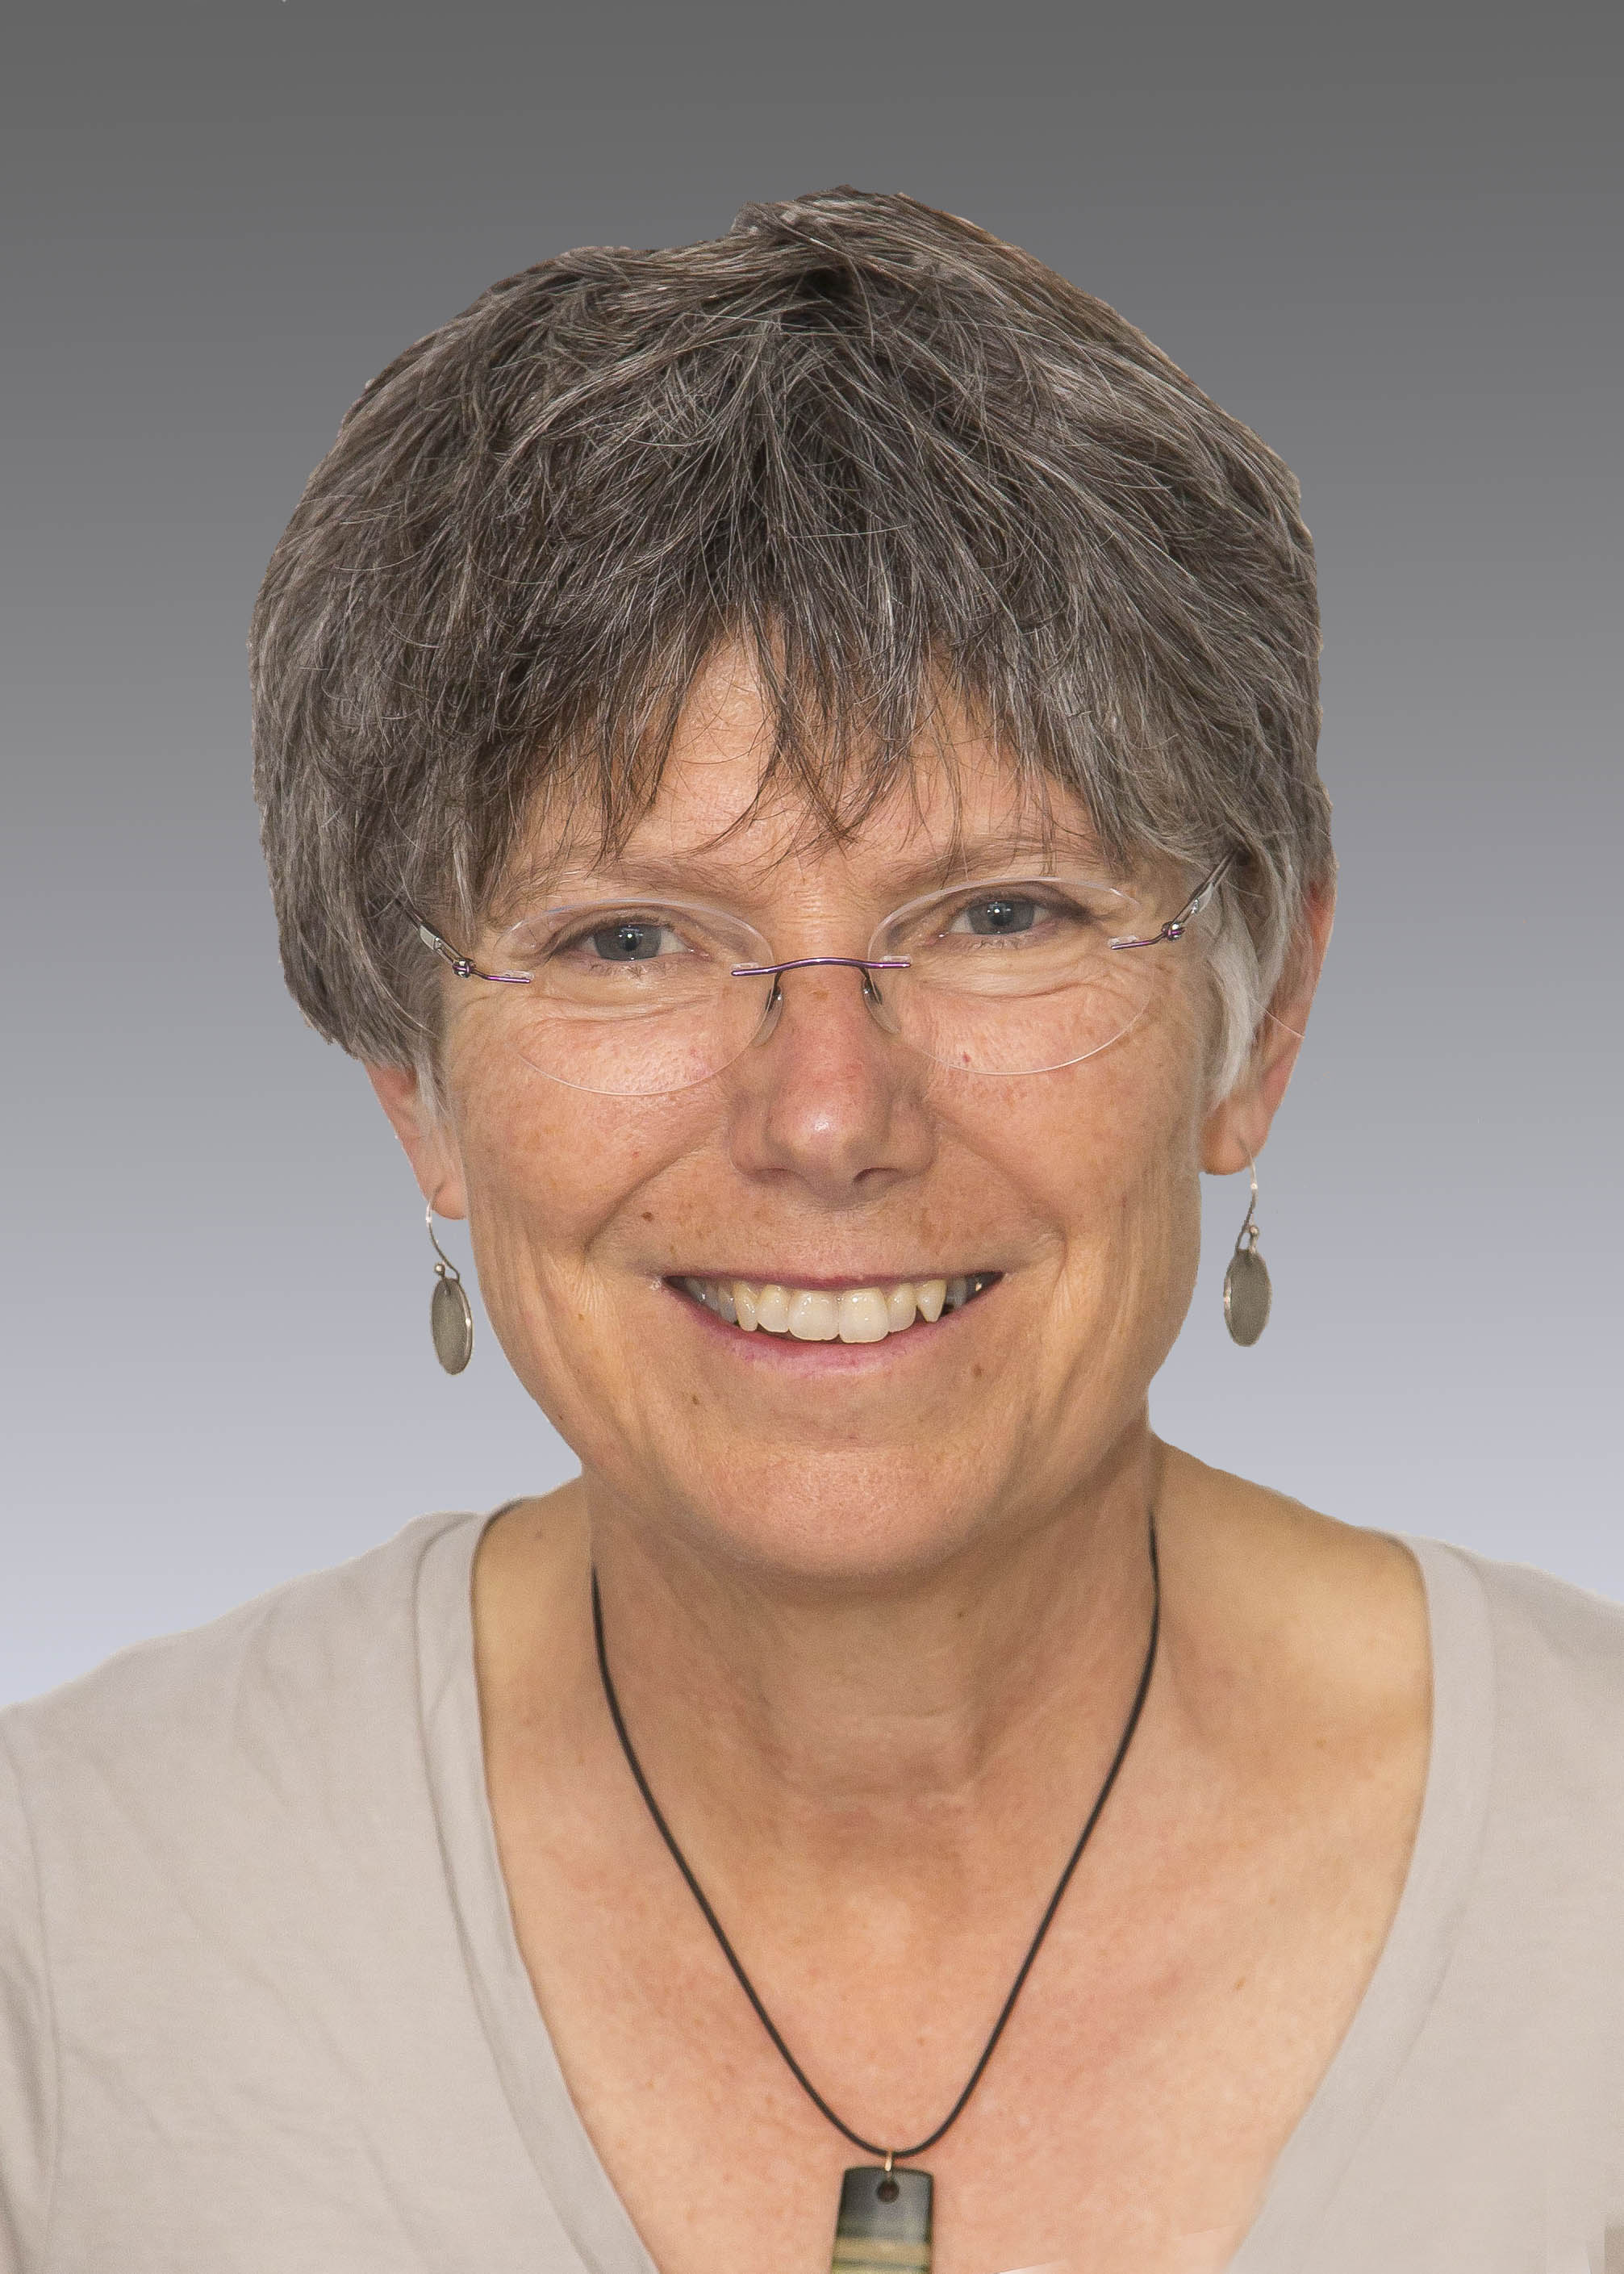 Bekins profile photograph at the USGS in 2017